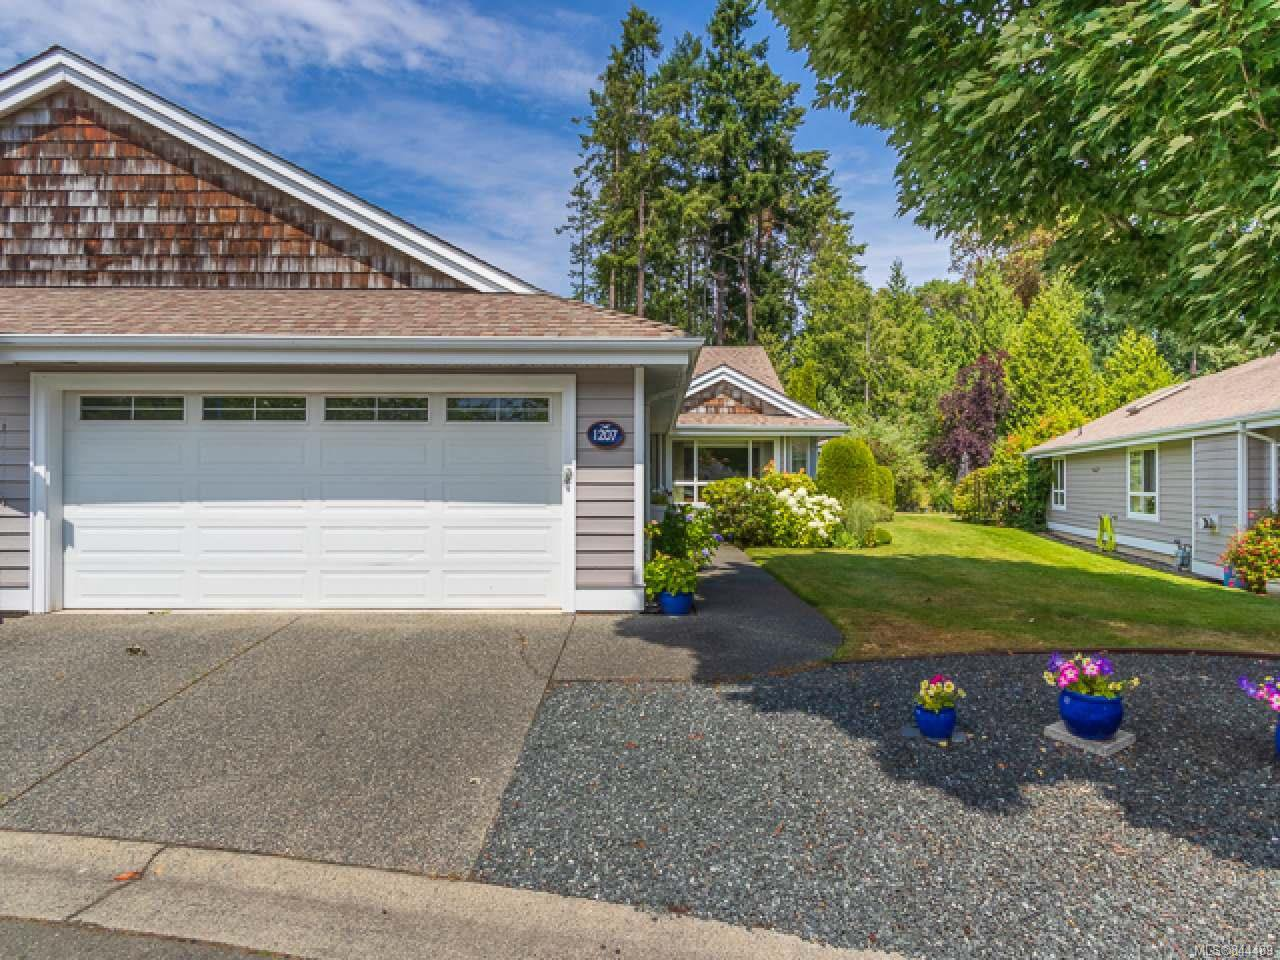 Main Photo: 1207 Saturna Dr in PARKSVILLE: PQ Parksville Row/Townhouse for sale (Parksville/Qualicum)  : MLS®# 844489